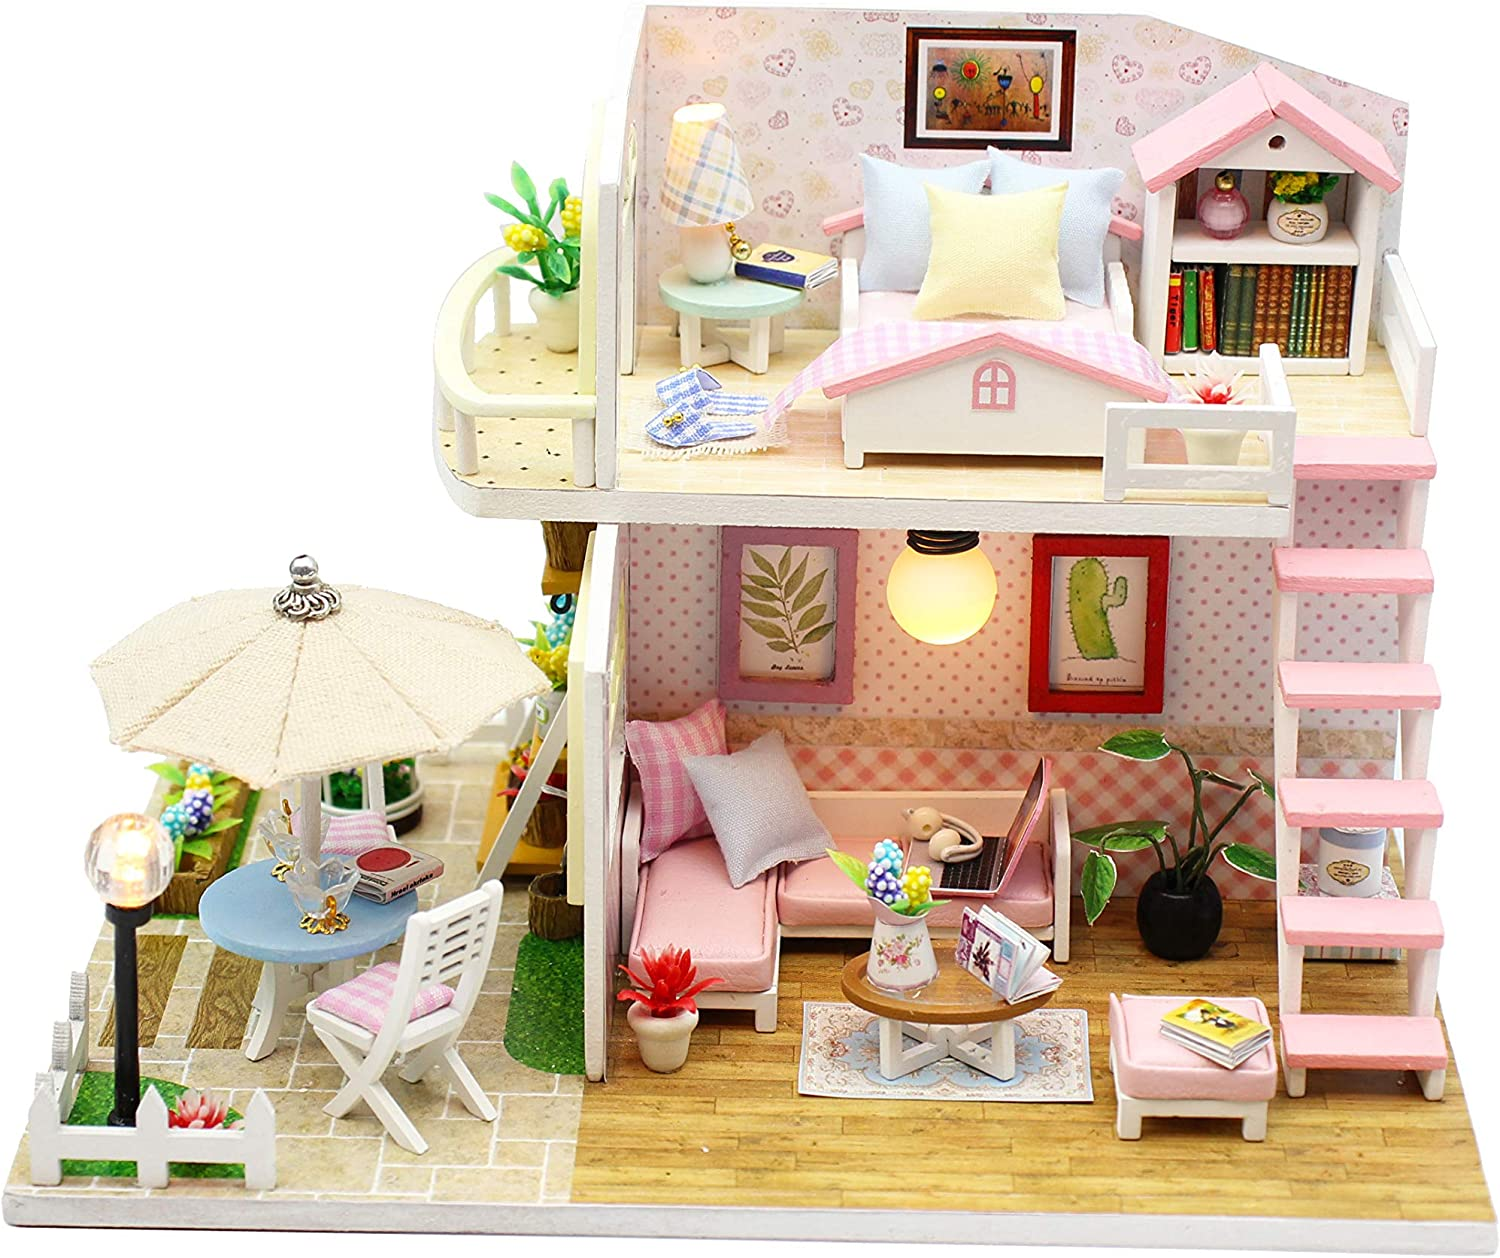 Flever Dollhouse Miniature DIY House Kit Creative Room with Furniture for Romantic Artwork Gift World of Creativity